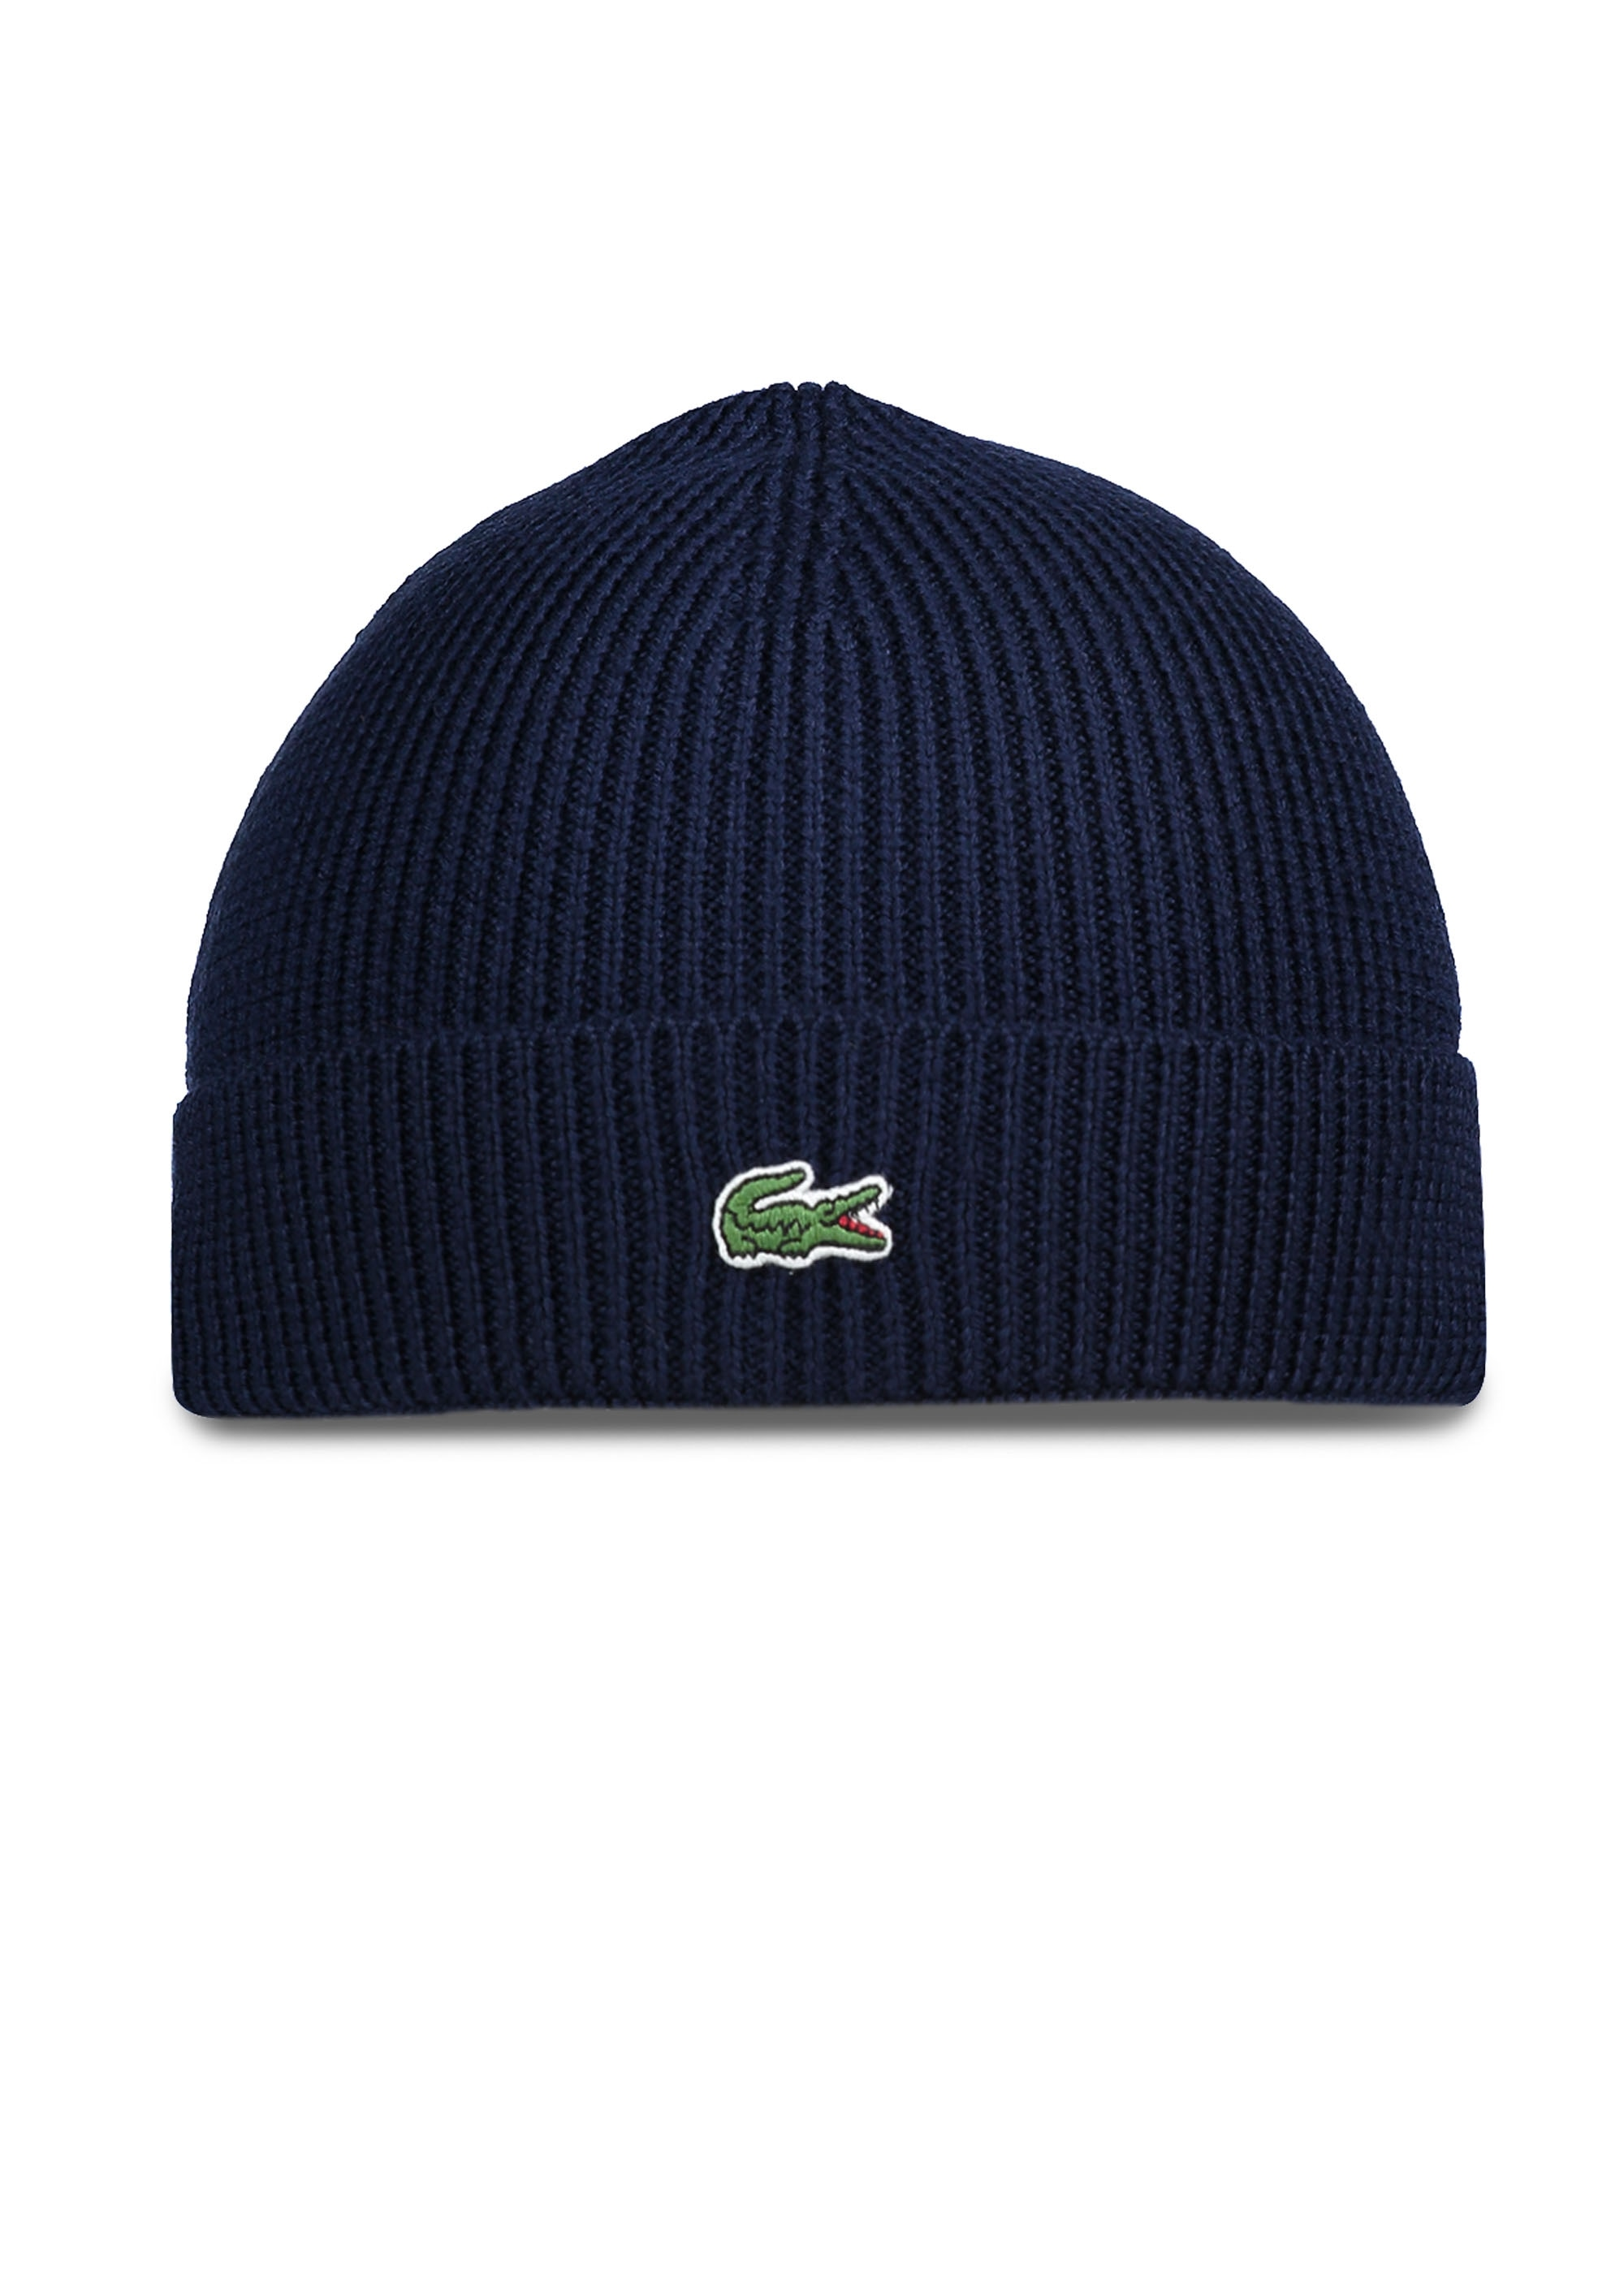 Lacoste Beanie Hat - Navy Blue - Headwear from Triads UK 3e6c903ac2a